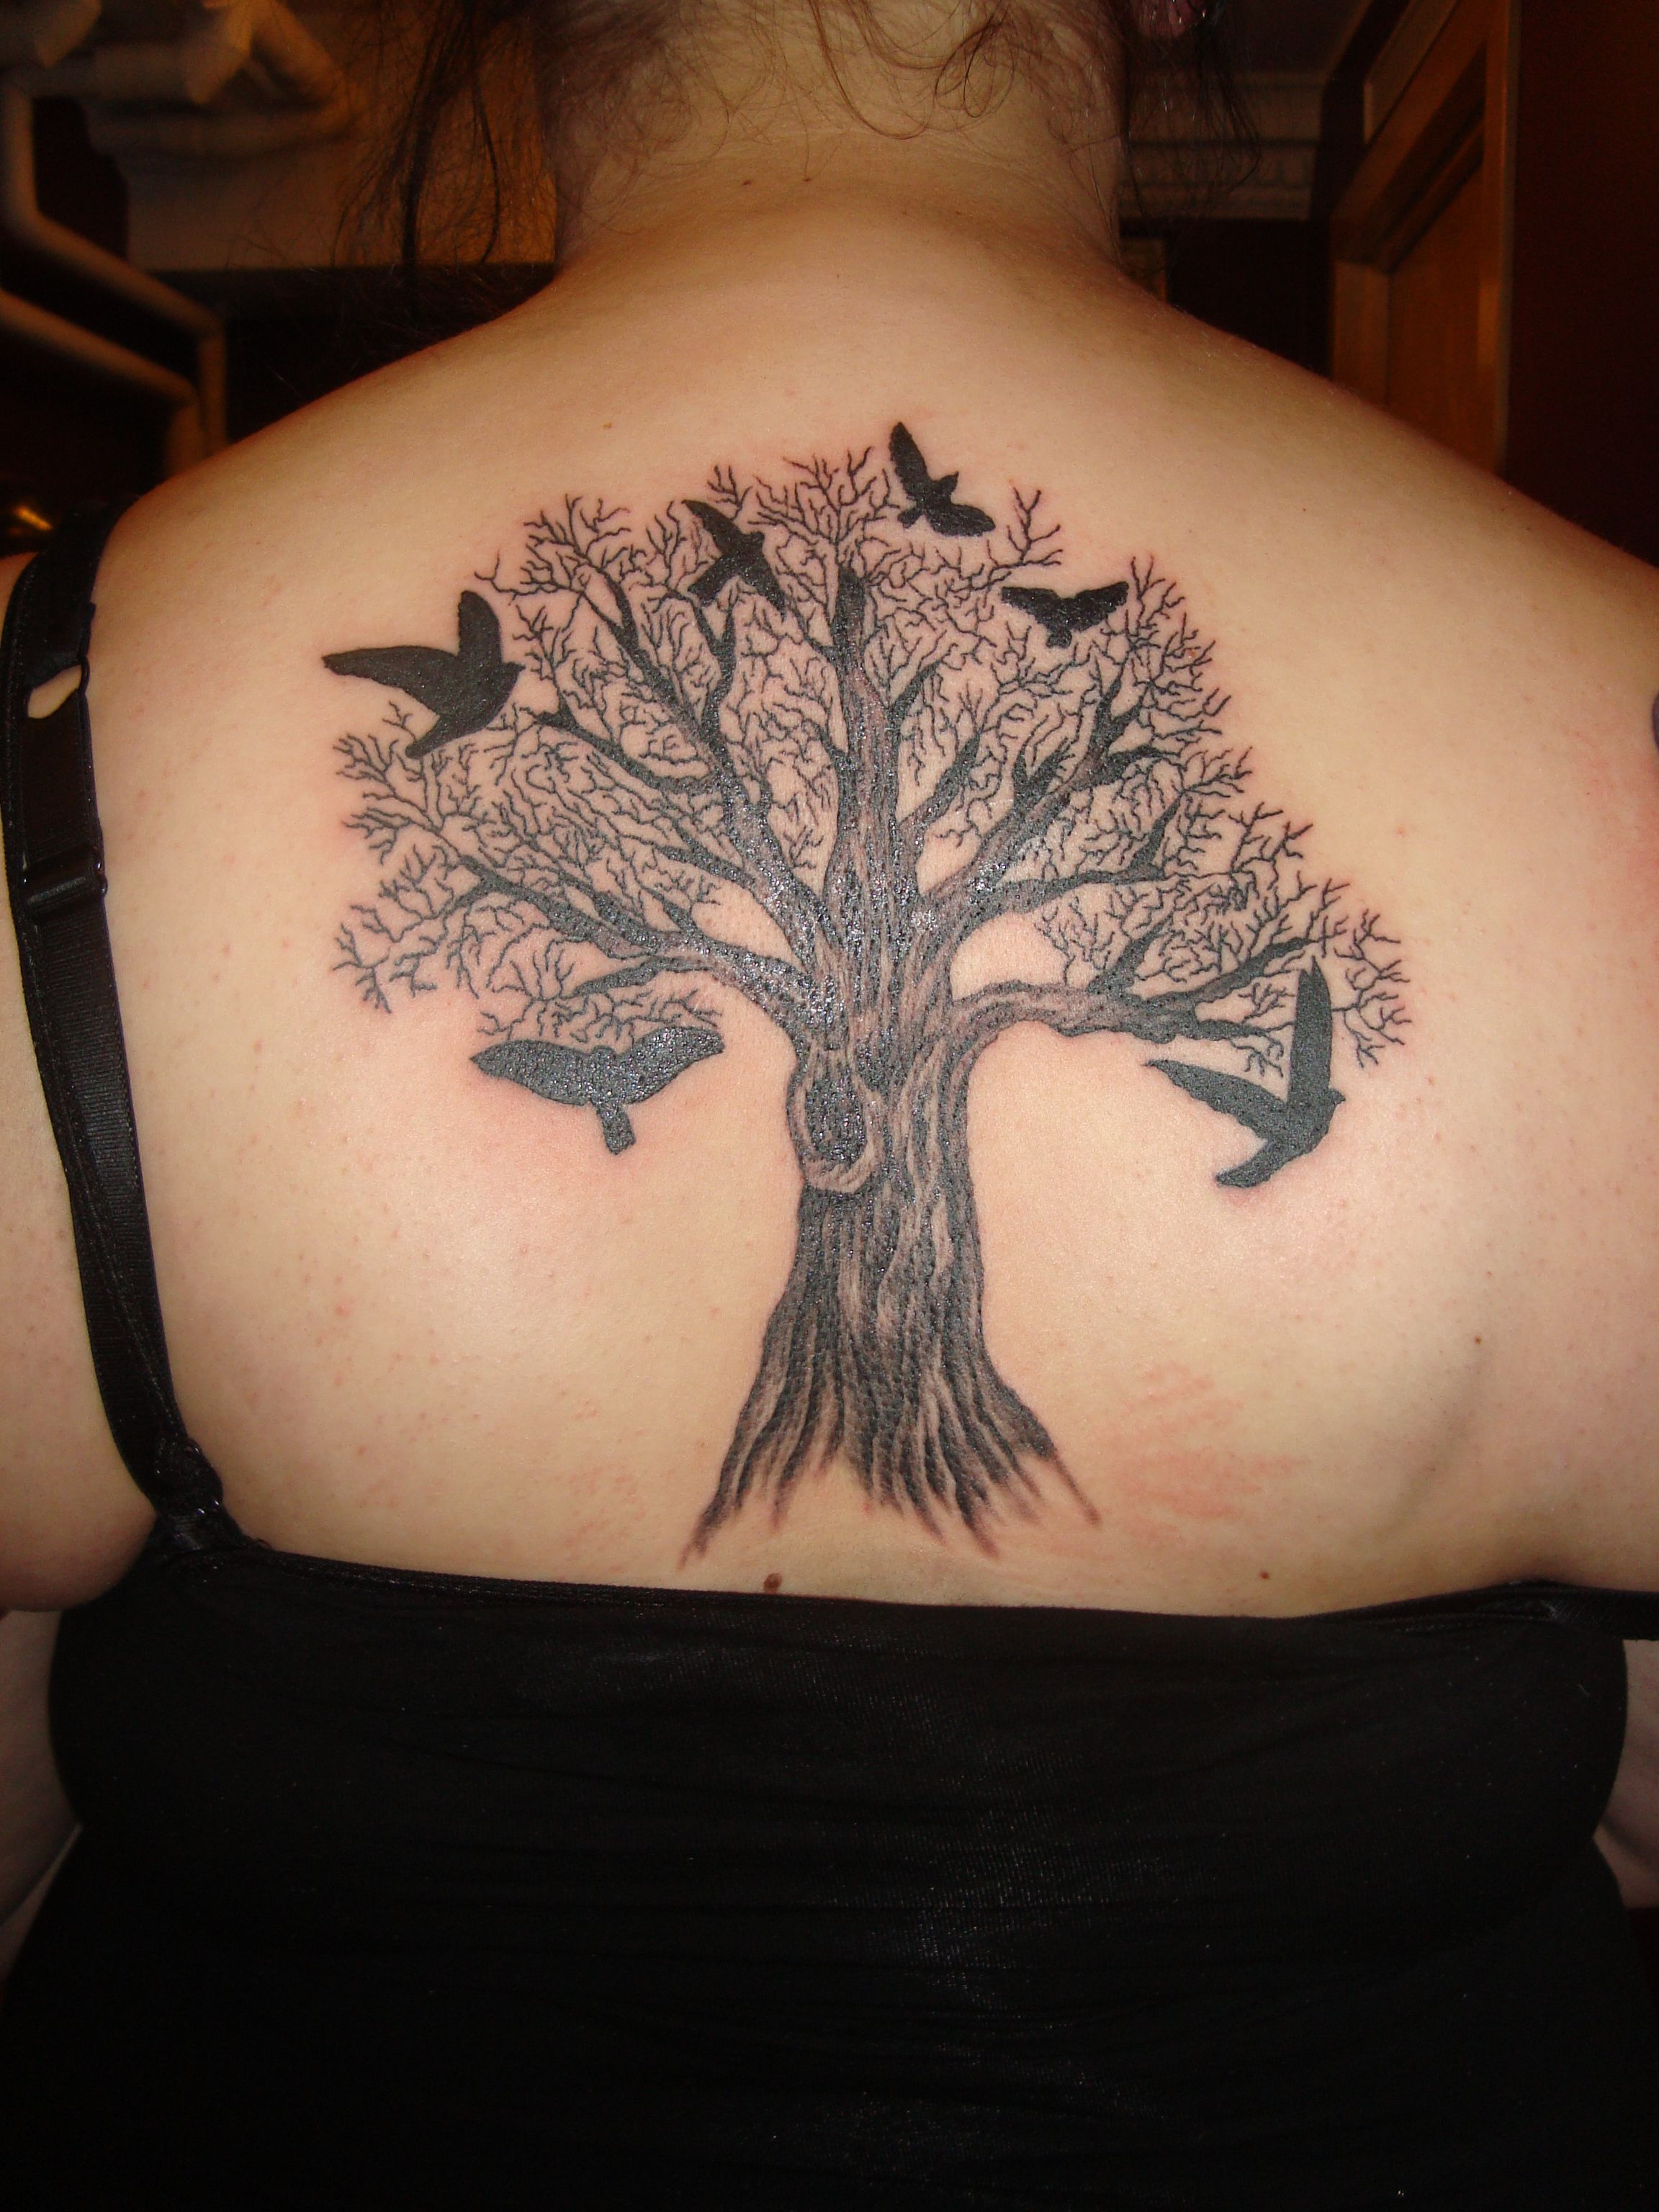 Family Tree Tattoo Designs Tattoos for women, Bird